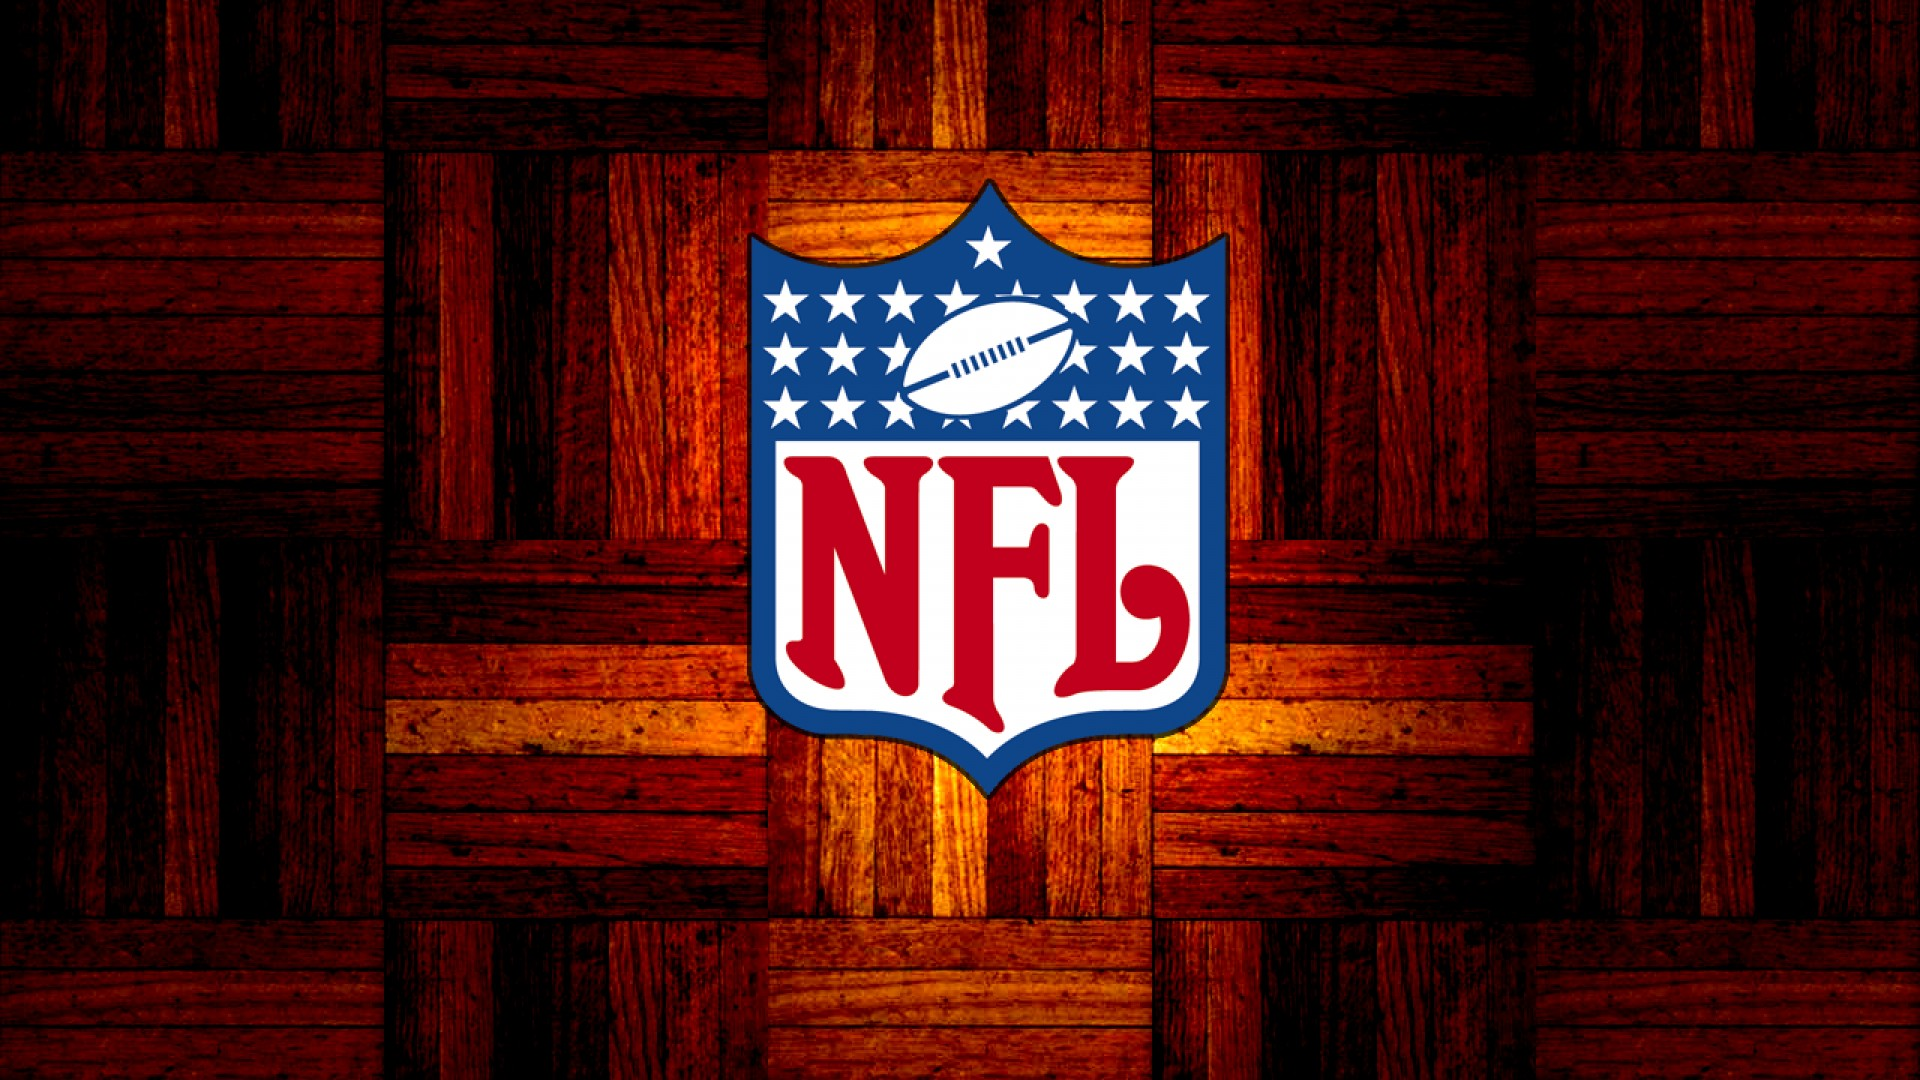 NFL Logo Wallpaper HD wallpaper